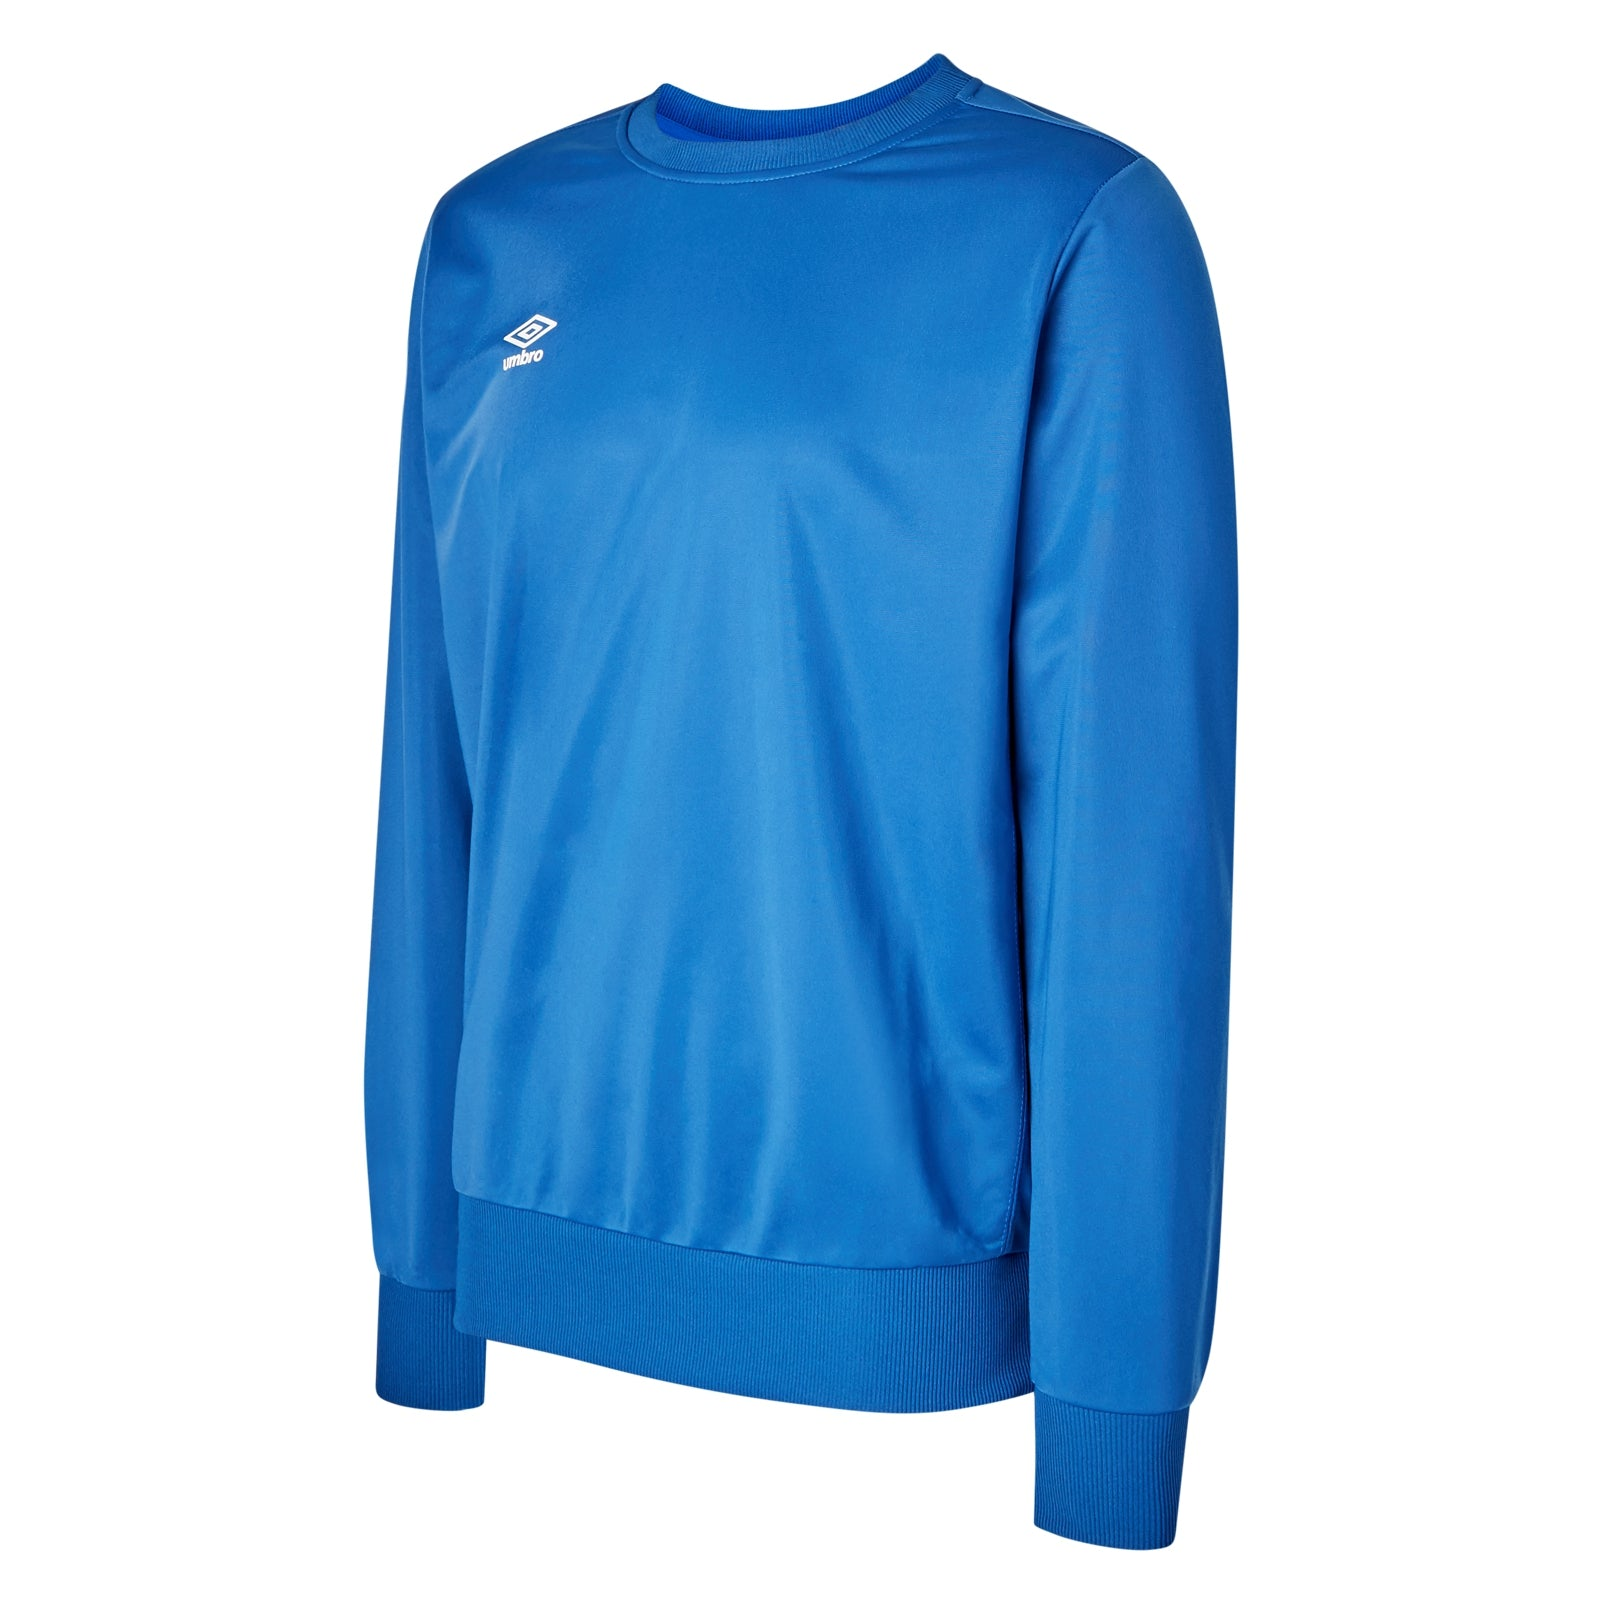 Umbro club Essential poly sweat in royal blue with white Diamond logo